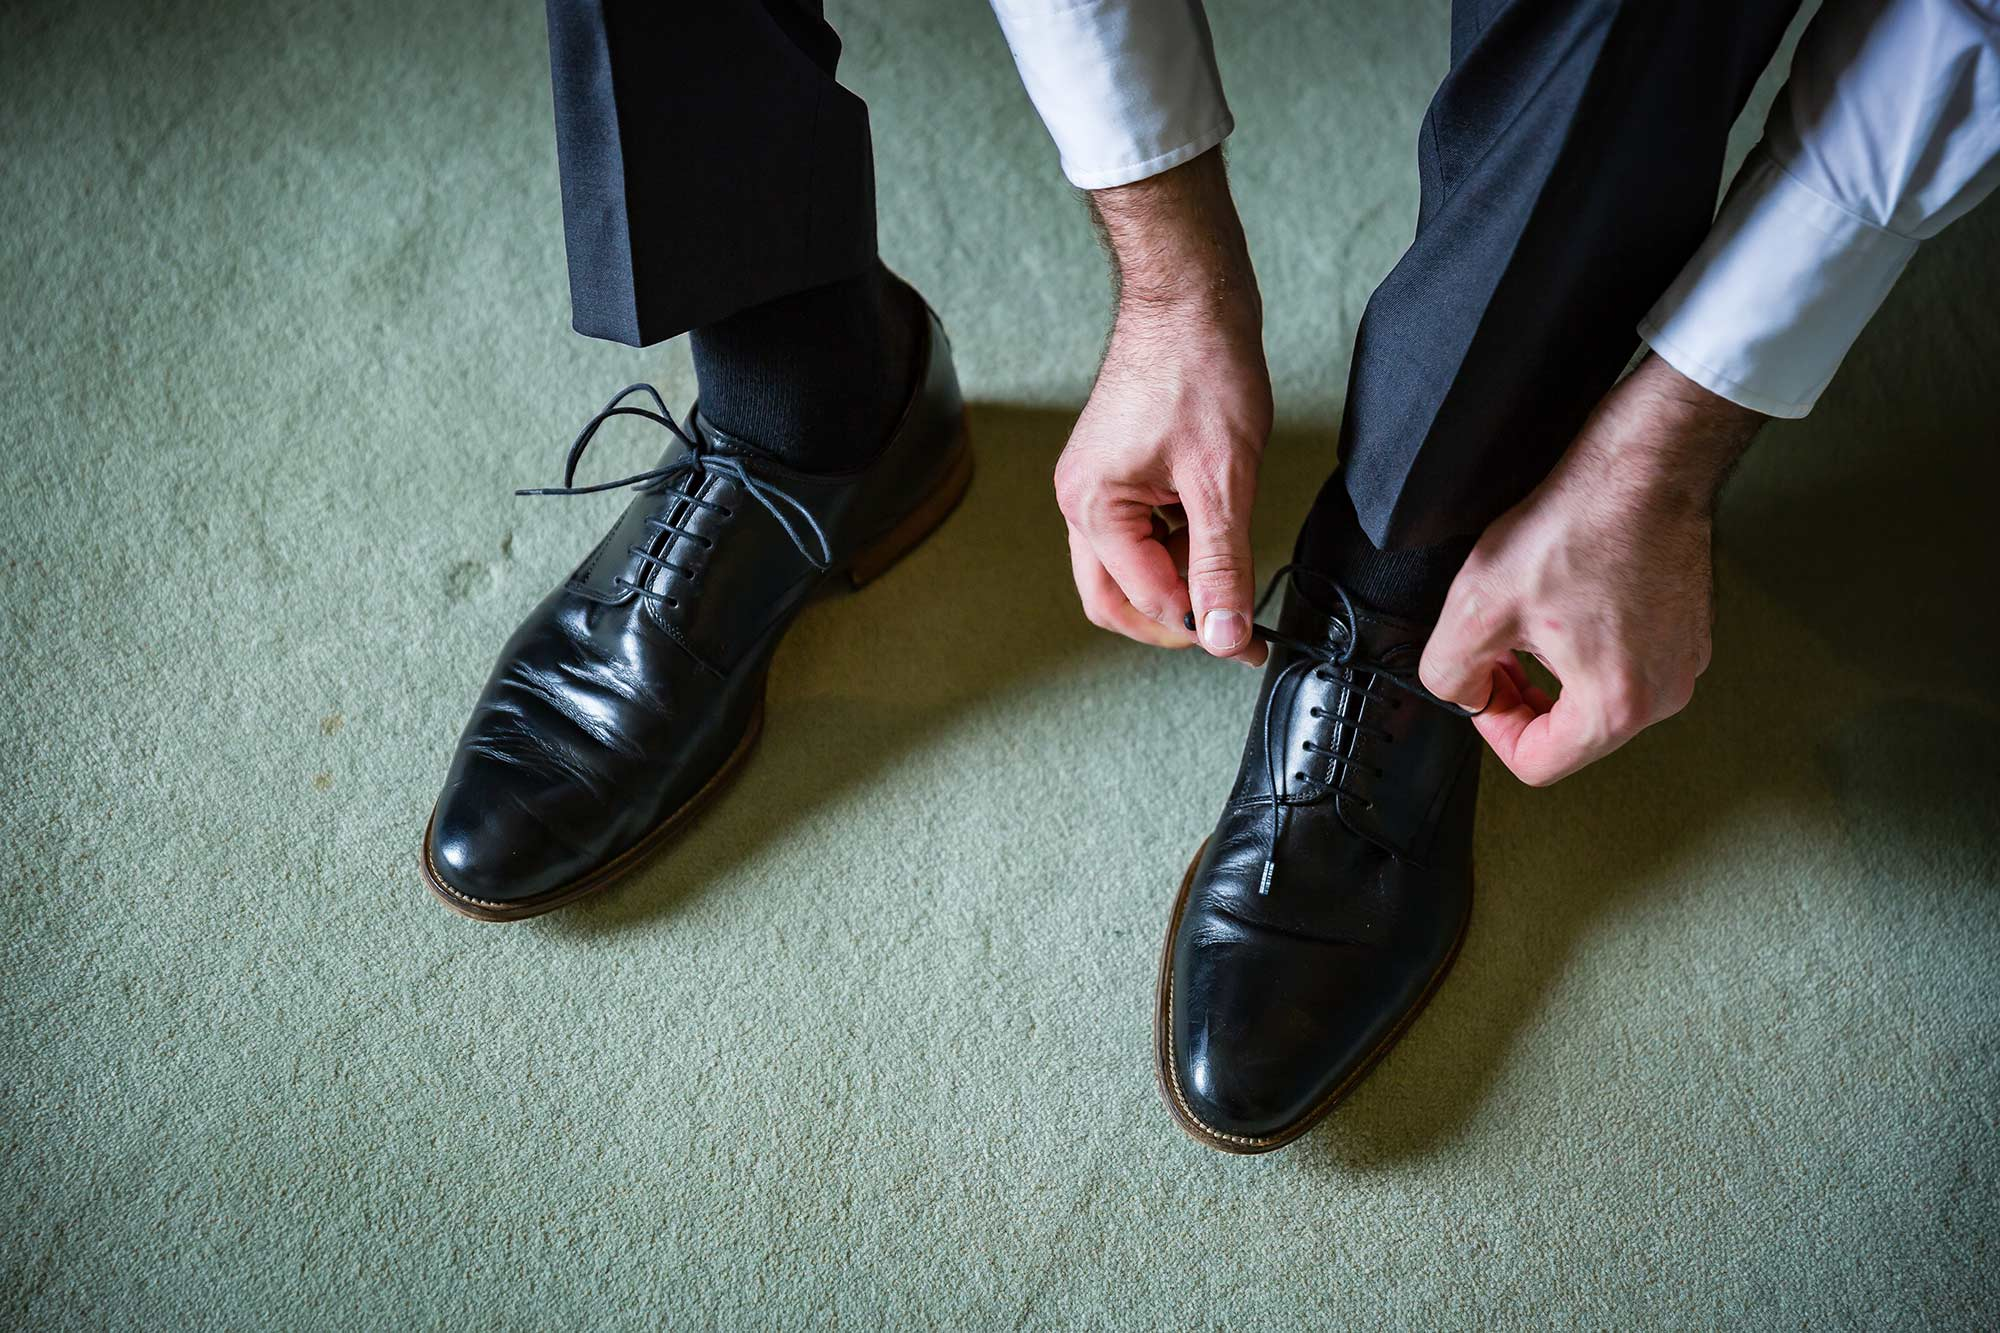 putting on wedding shoes